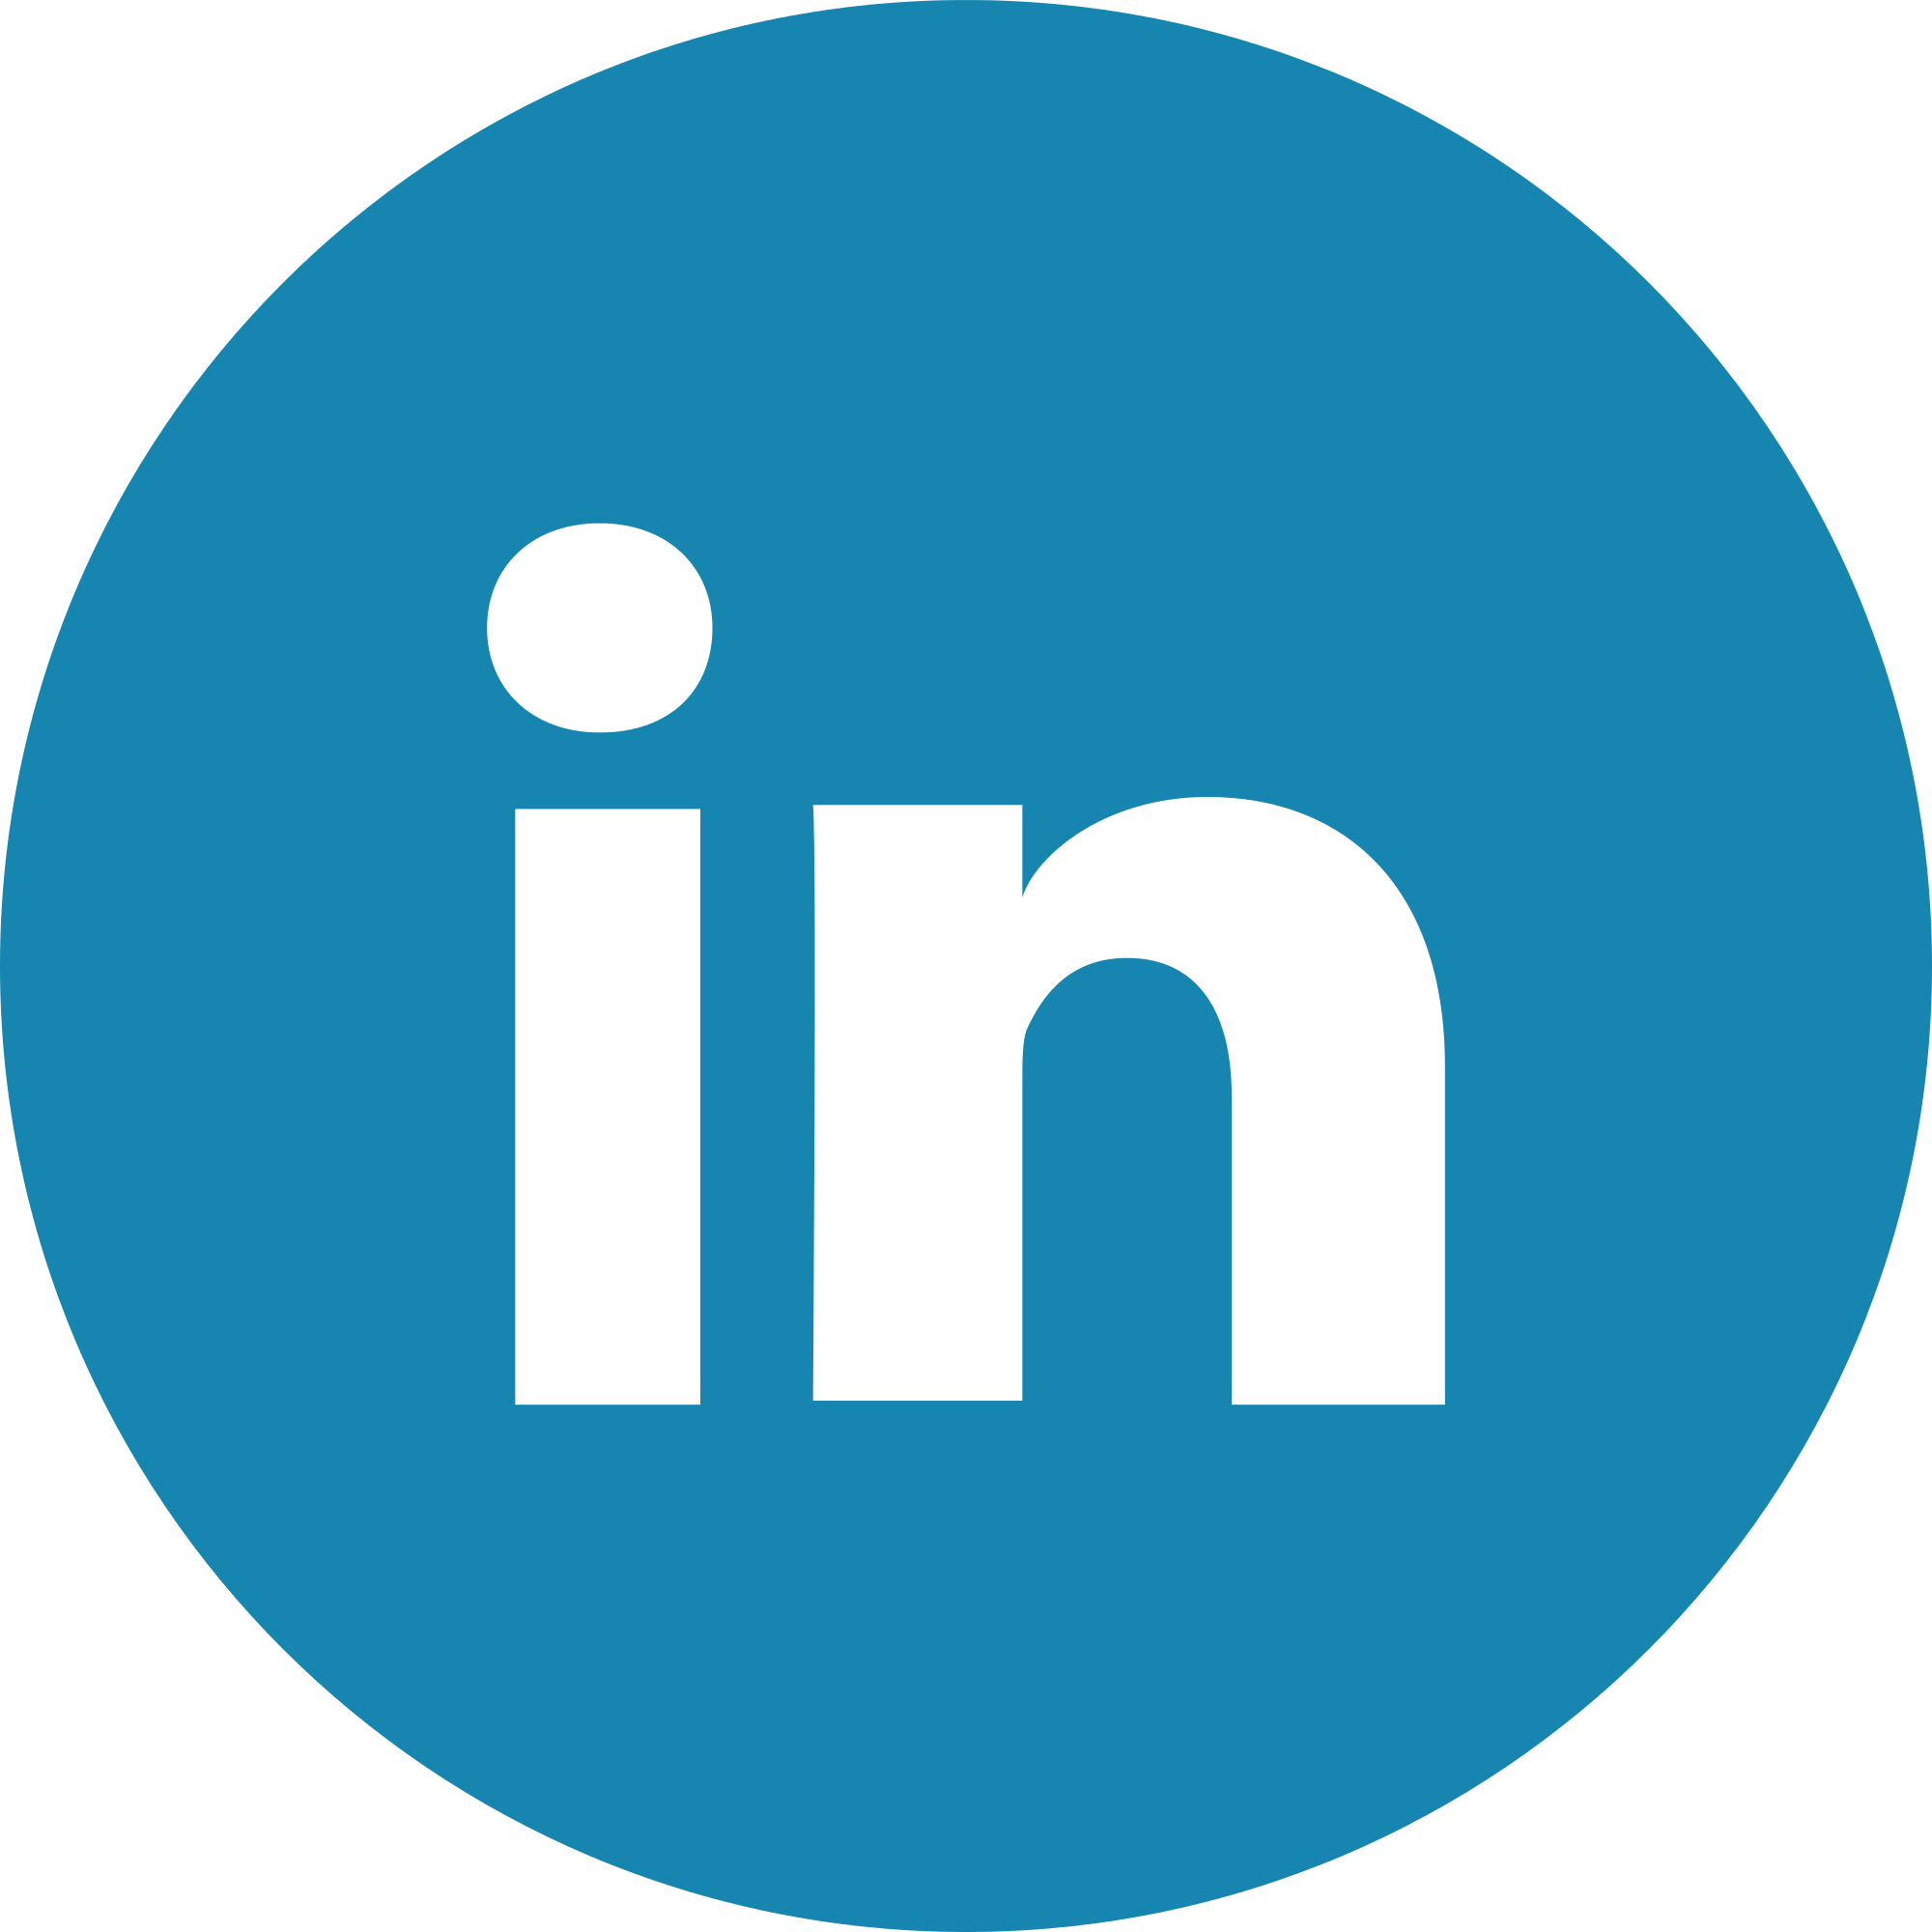 Linkedin_circle.svg_